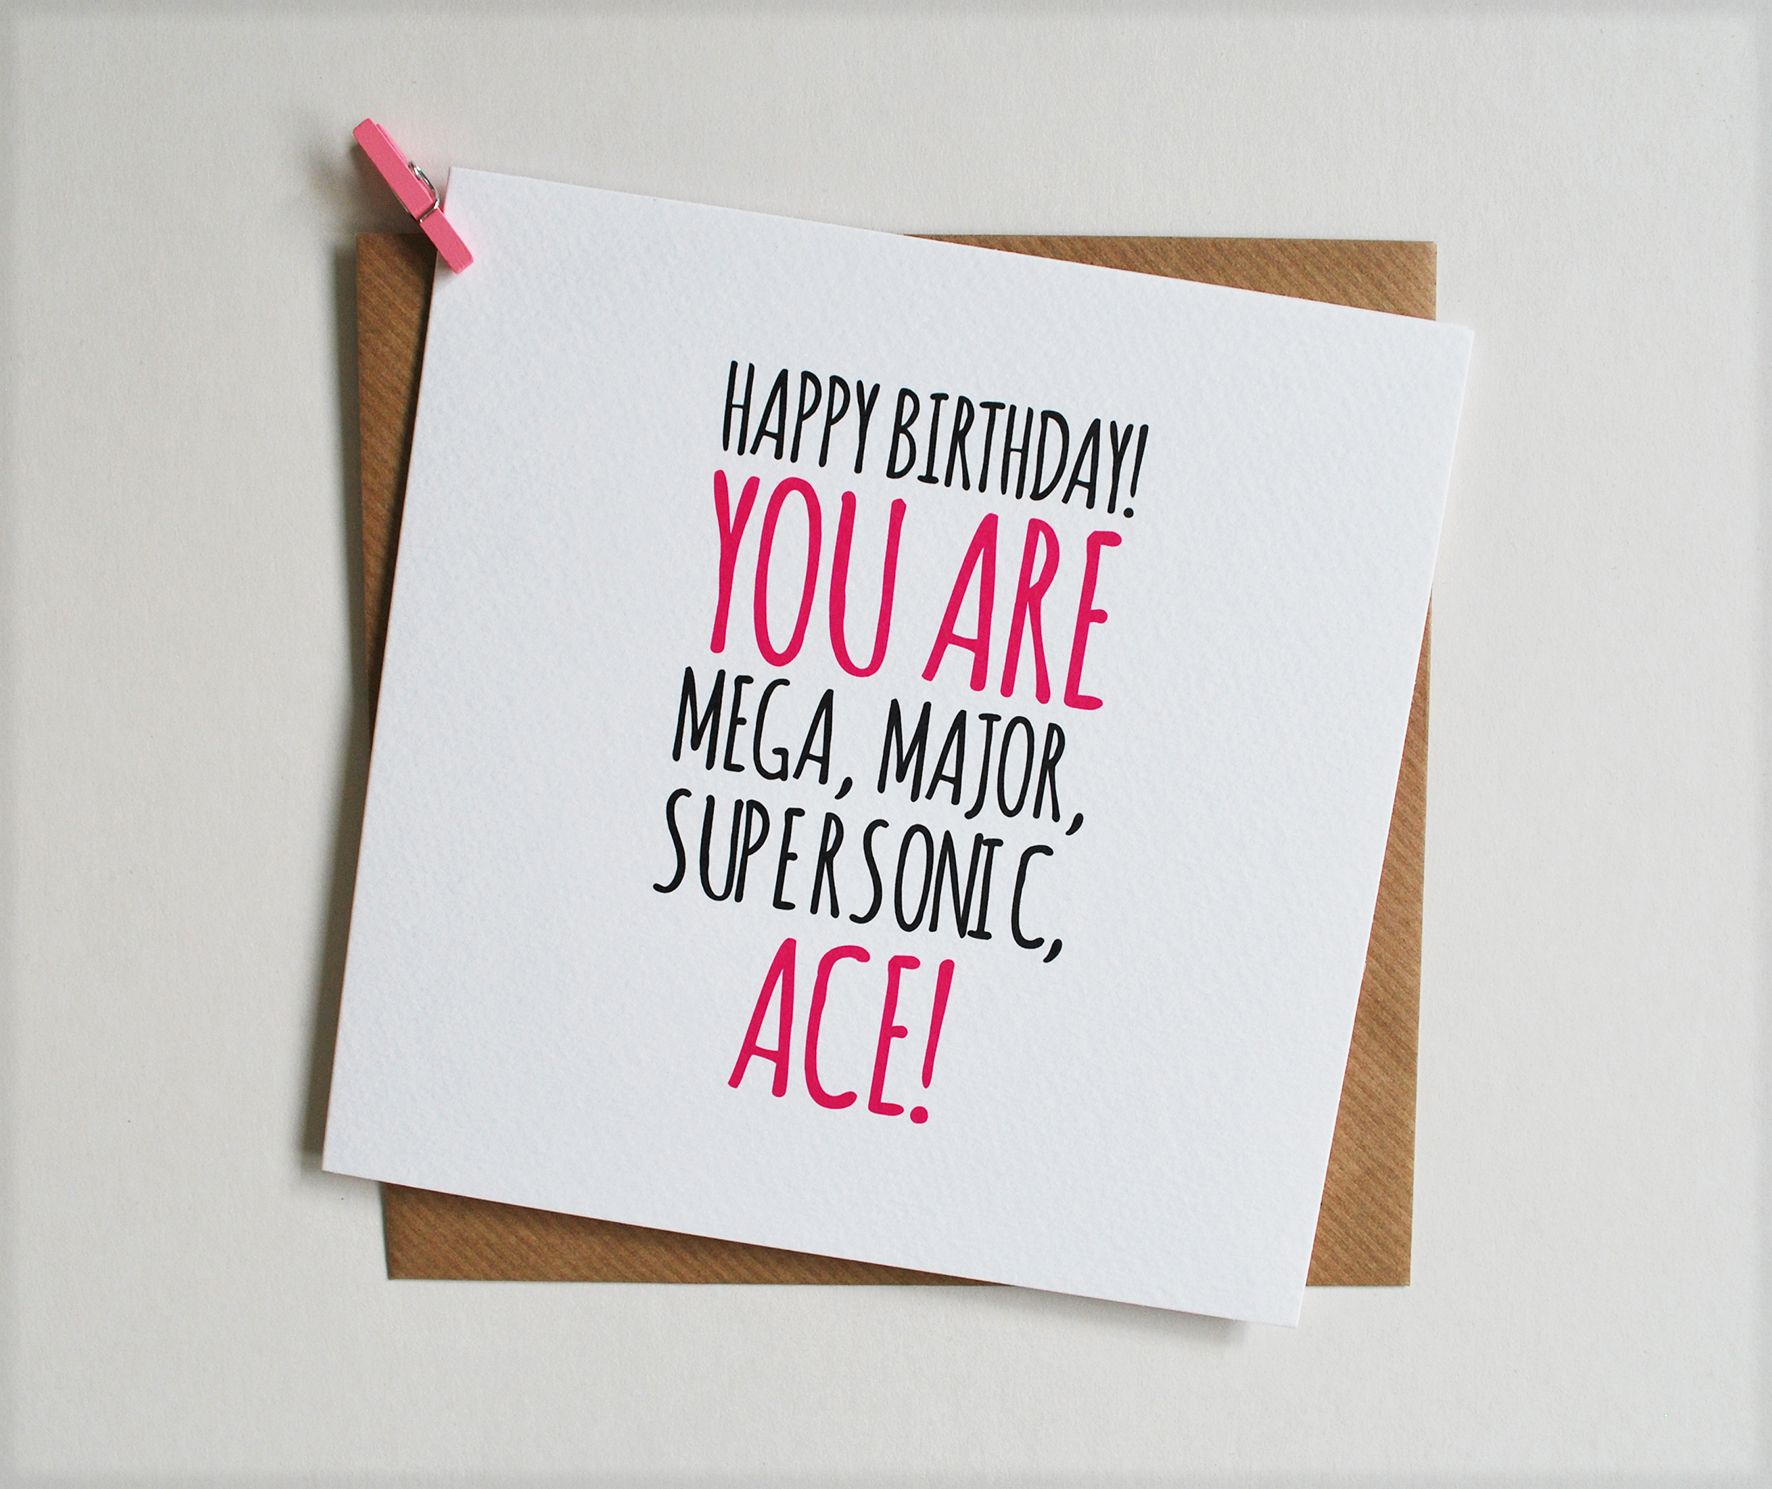 Happy Birthday You Are Mega Major Super Sonic Ace Card Printed On